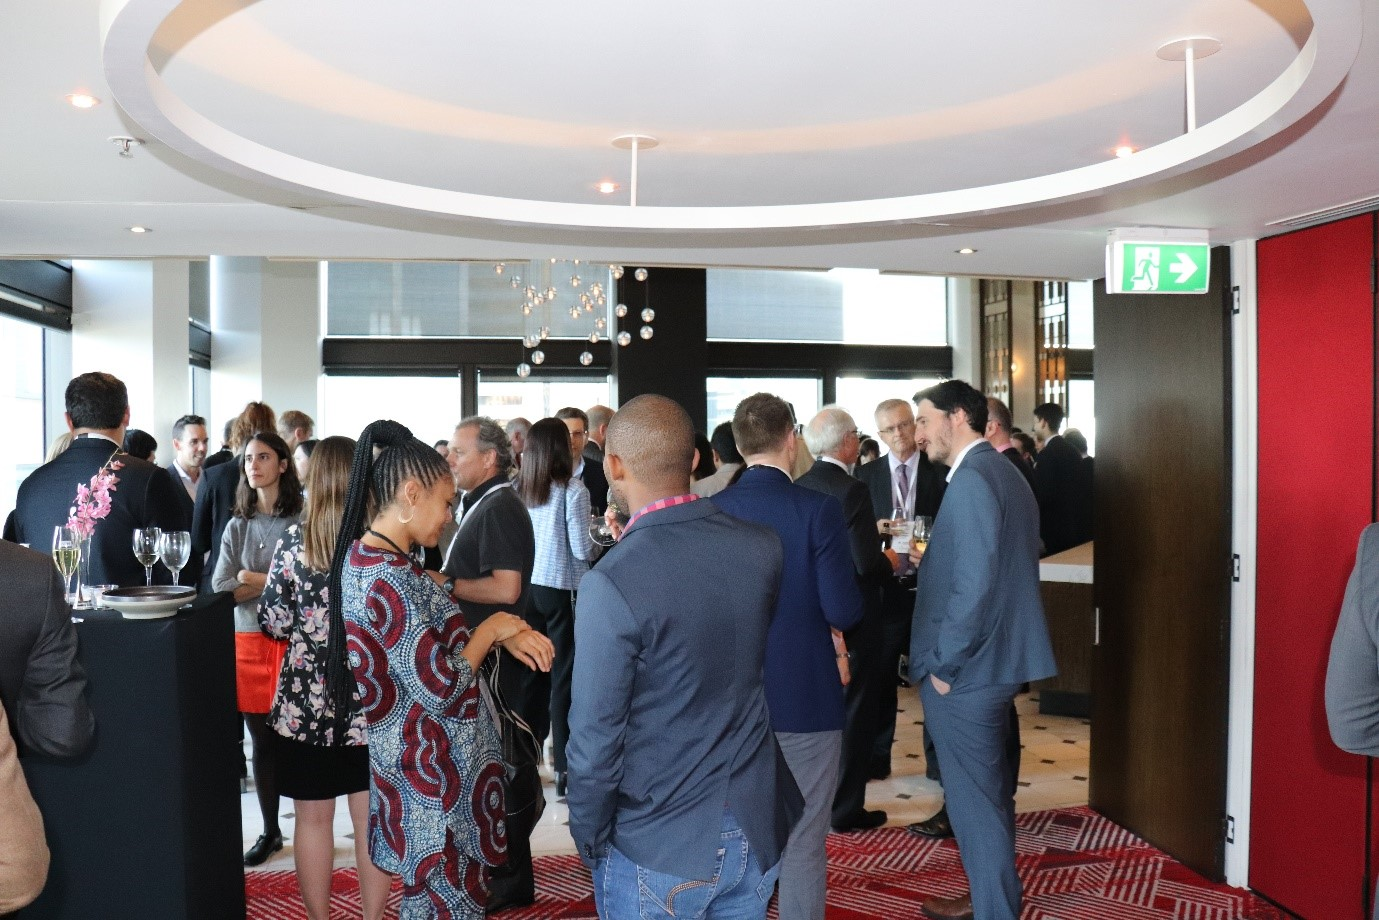 Welcome reception - image 3